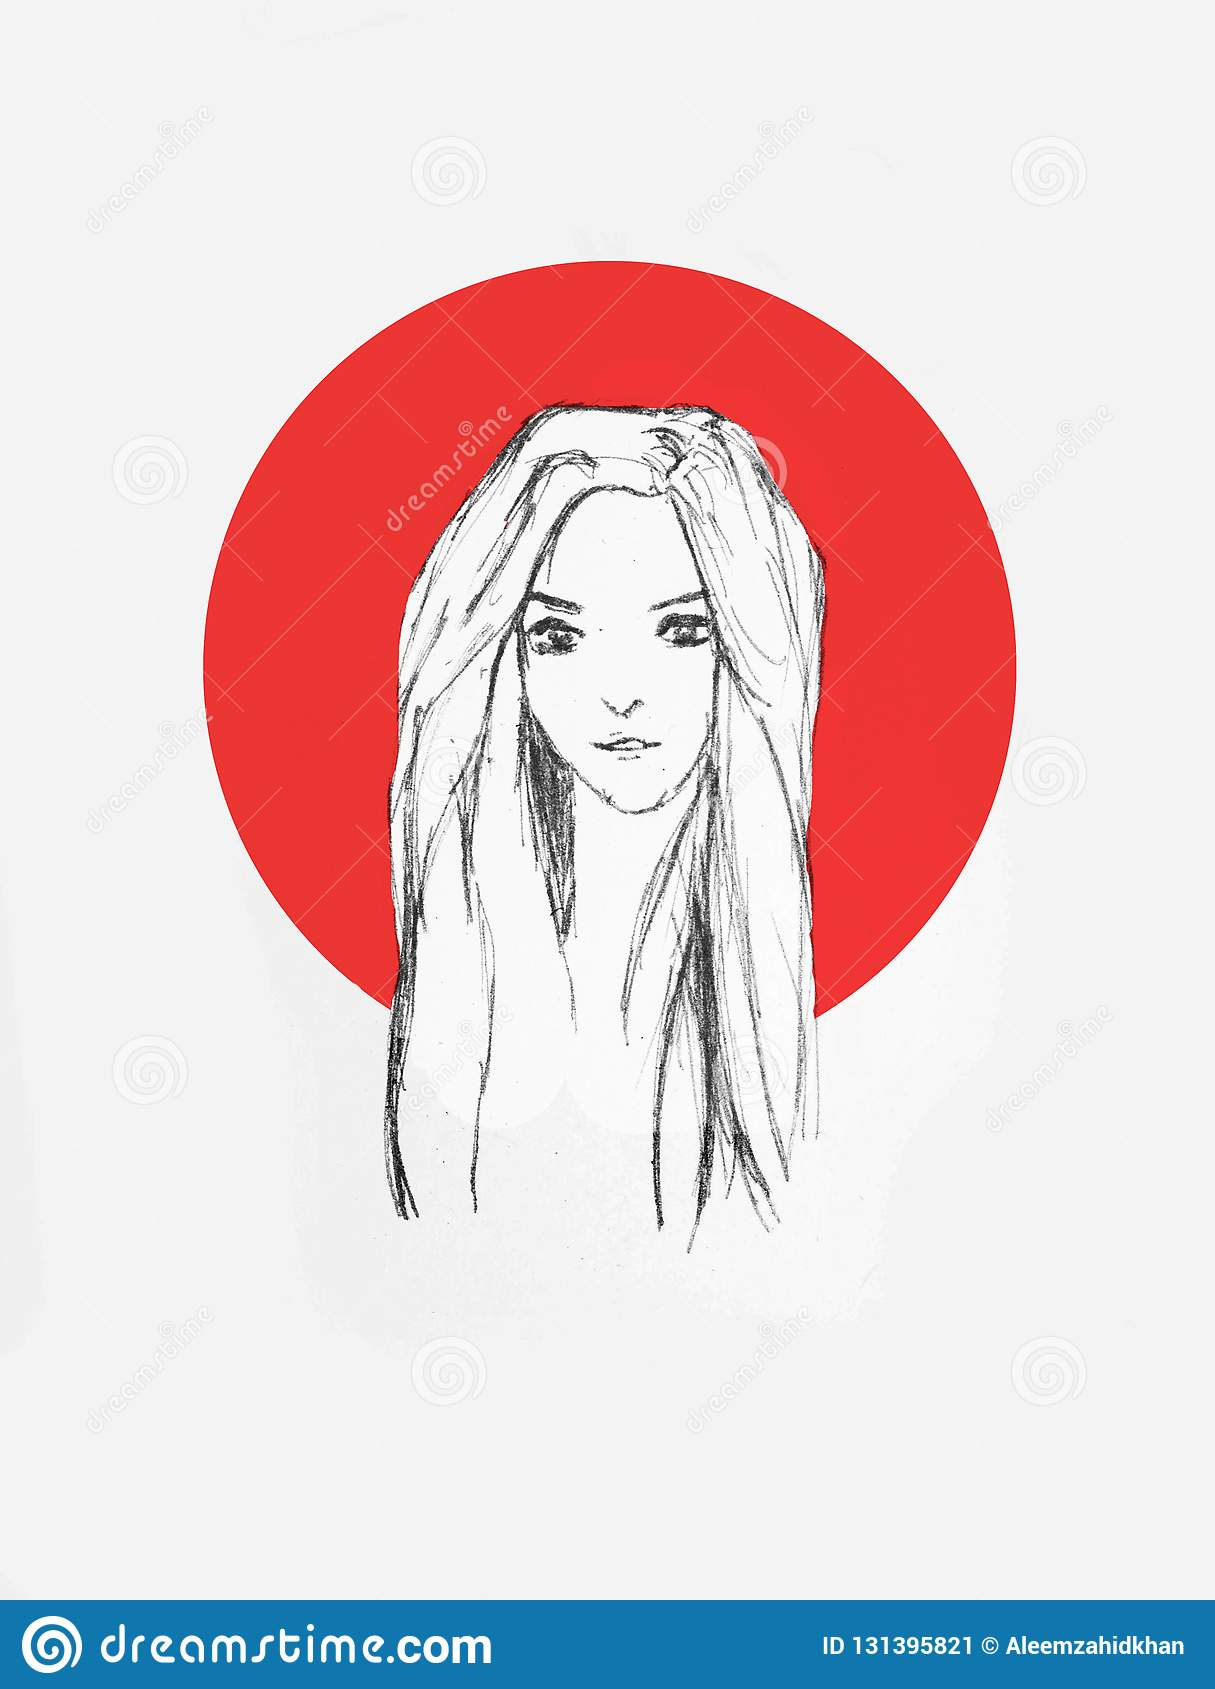 Beautiful girl portrait pencil sketch of an anime girl with red circle on the background